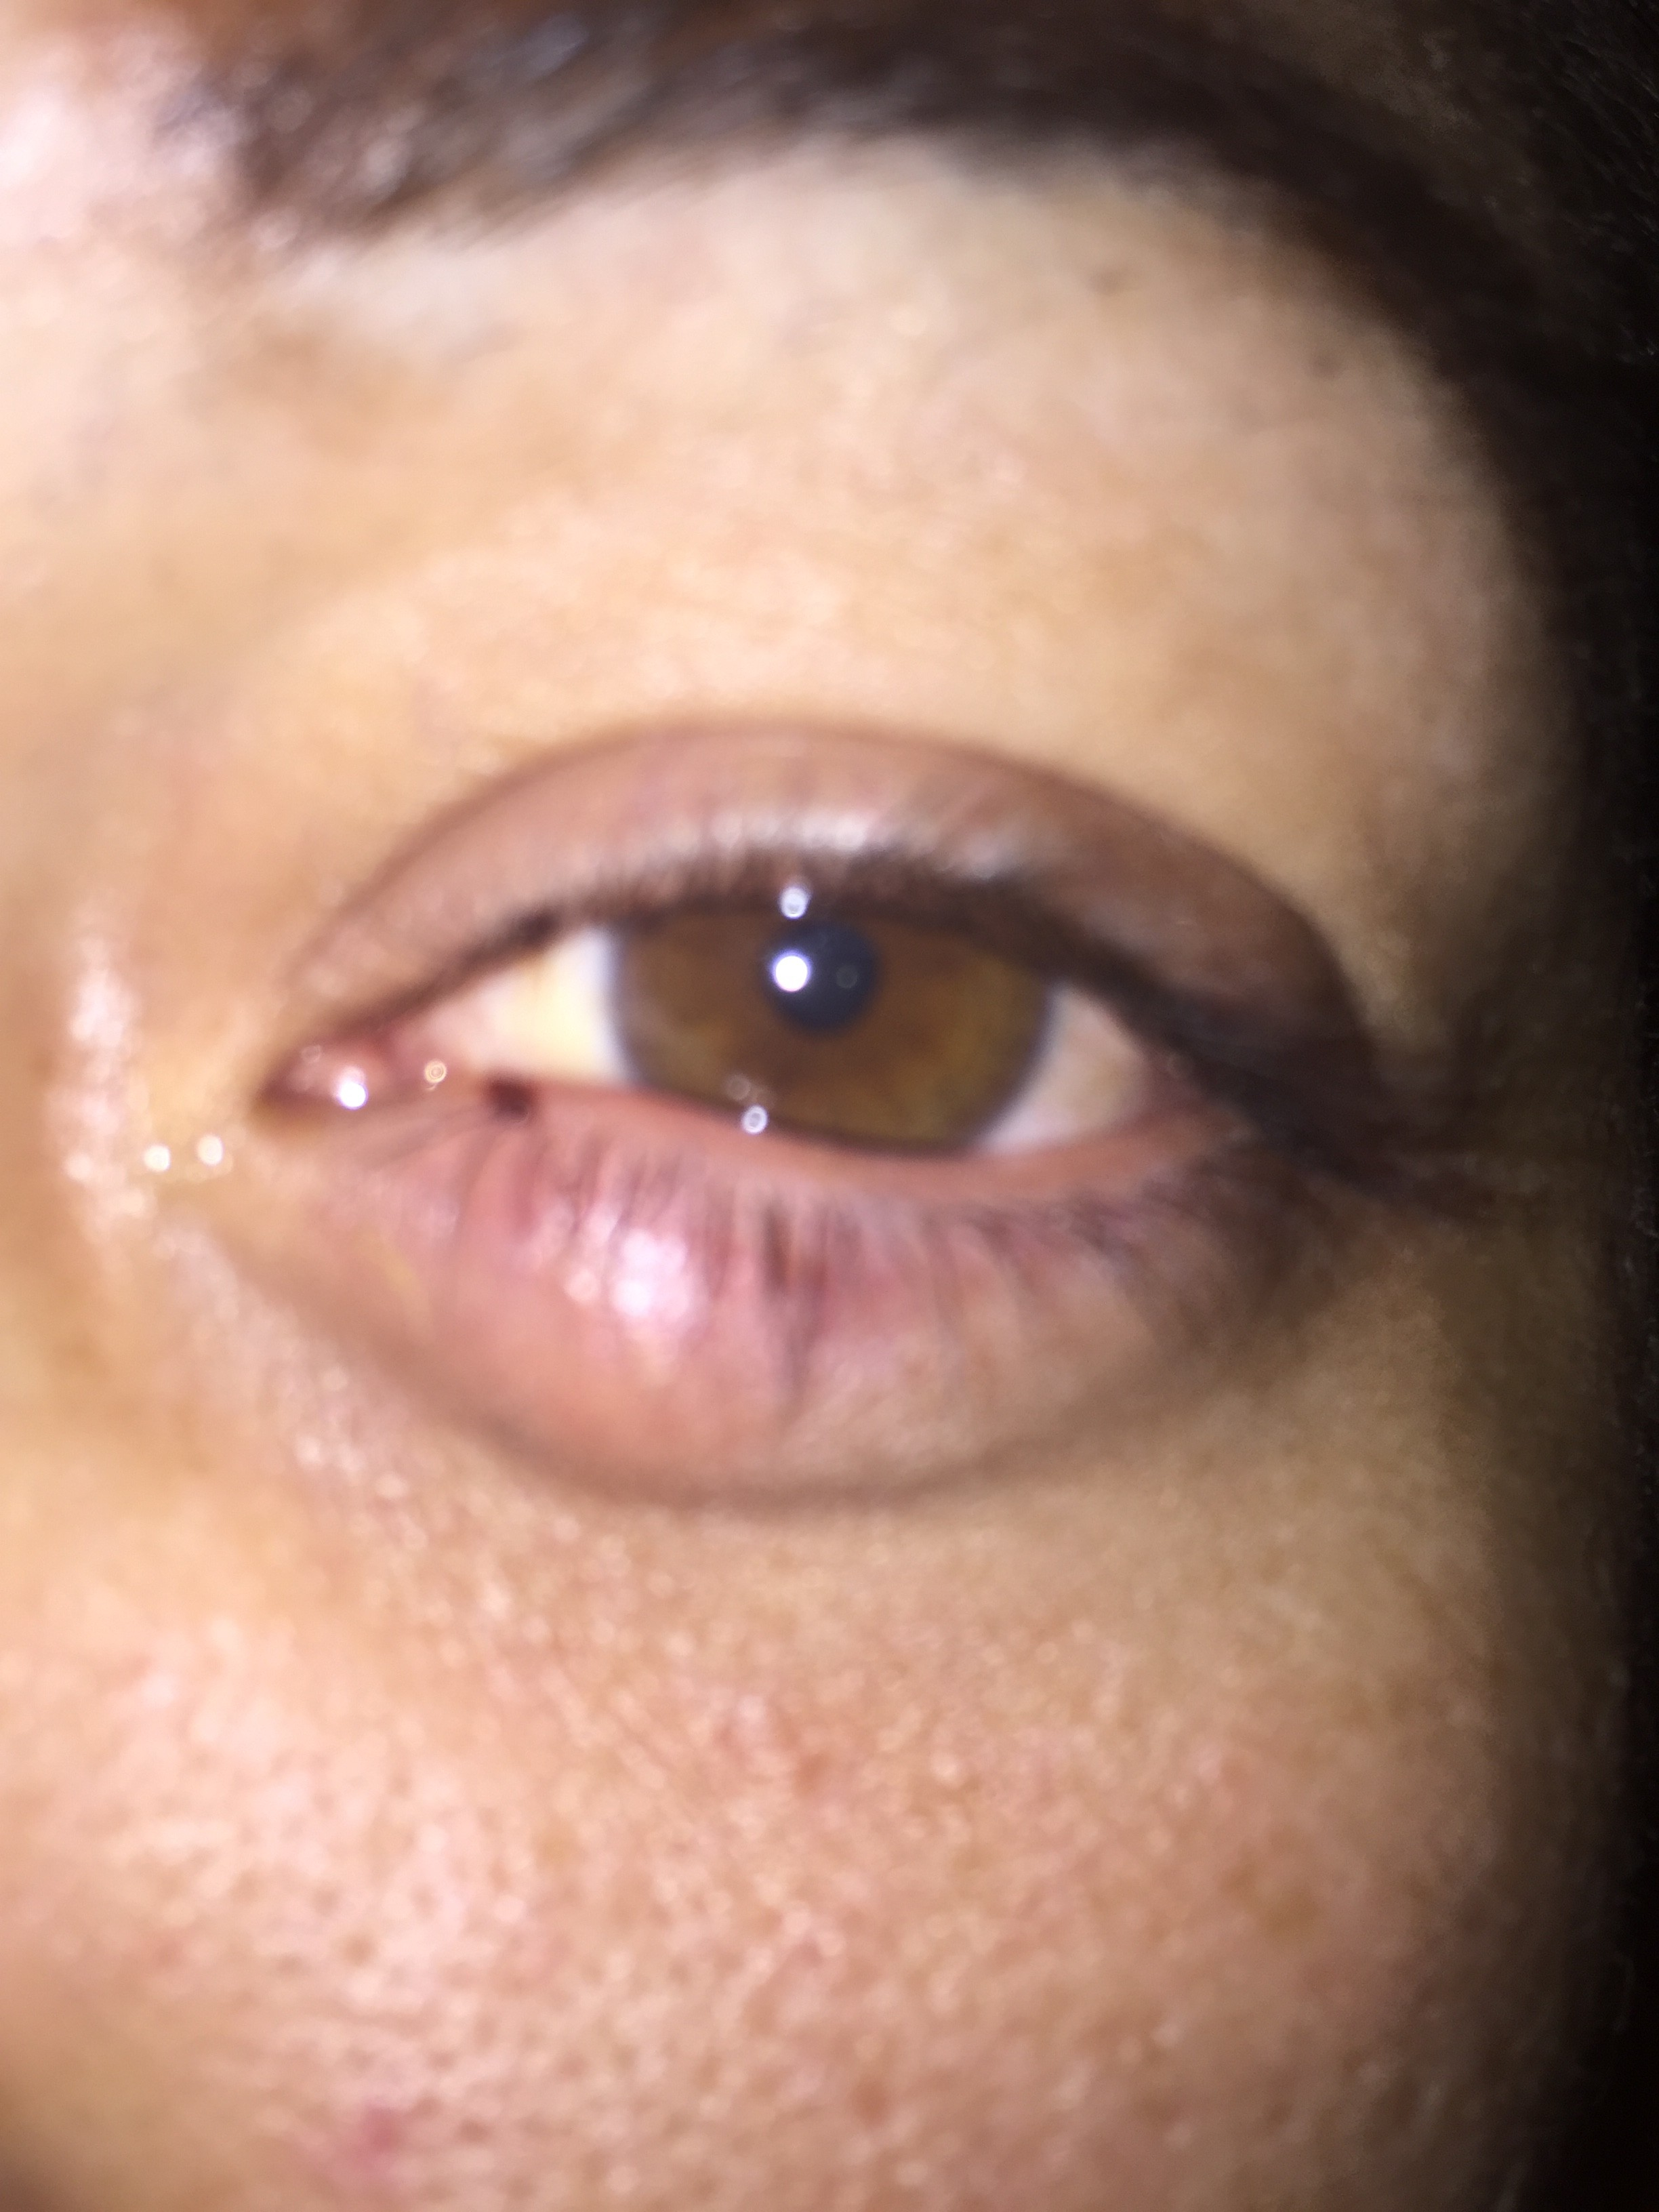 can steroid eye drops cause glaucoma